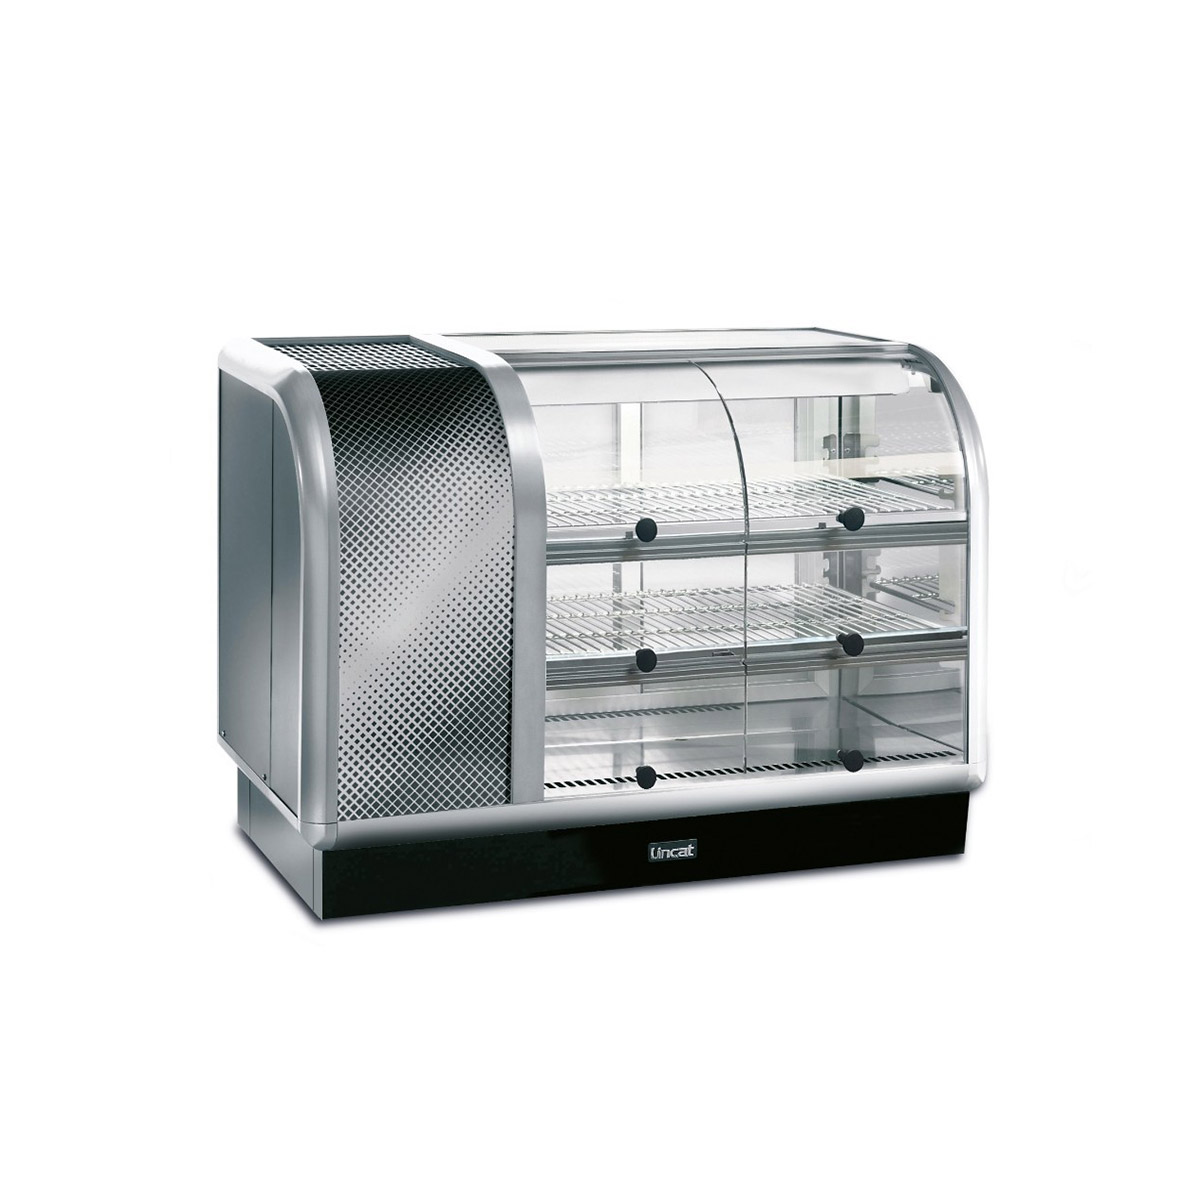 C6R/105SL - Lincat Seal 650 Series Counter-top Curved Front Refrigerated Merchandiser - Self-Service - Side-Mounted Power Pack [Left] - W 1050 mm - 0.6 kW